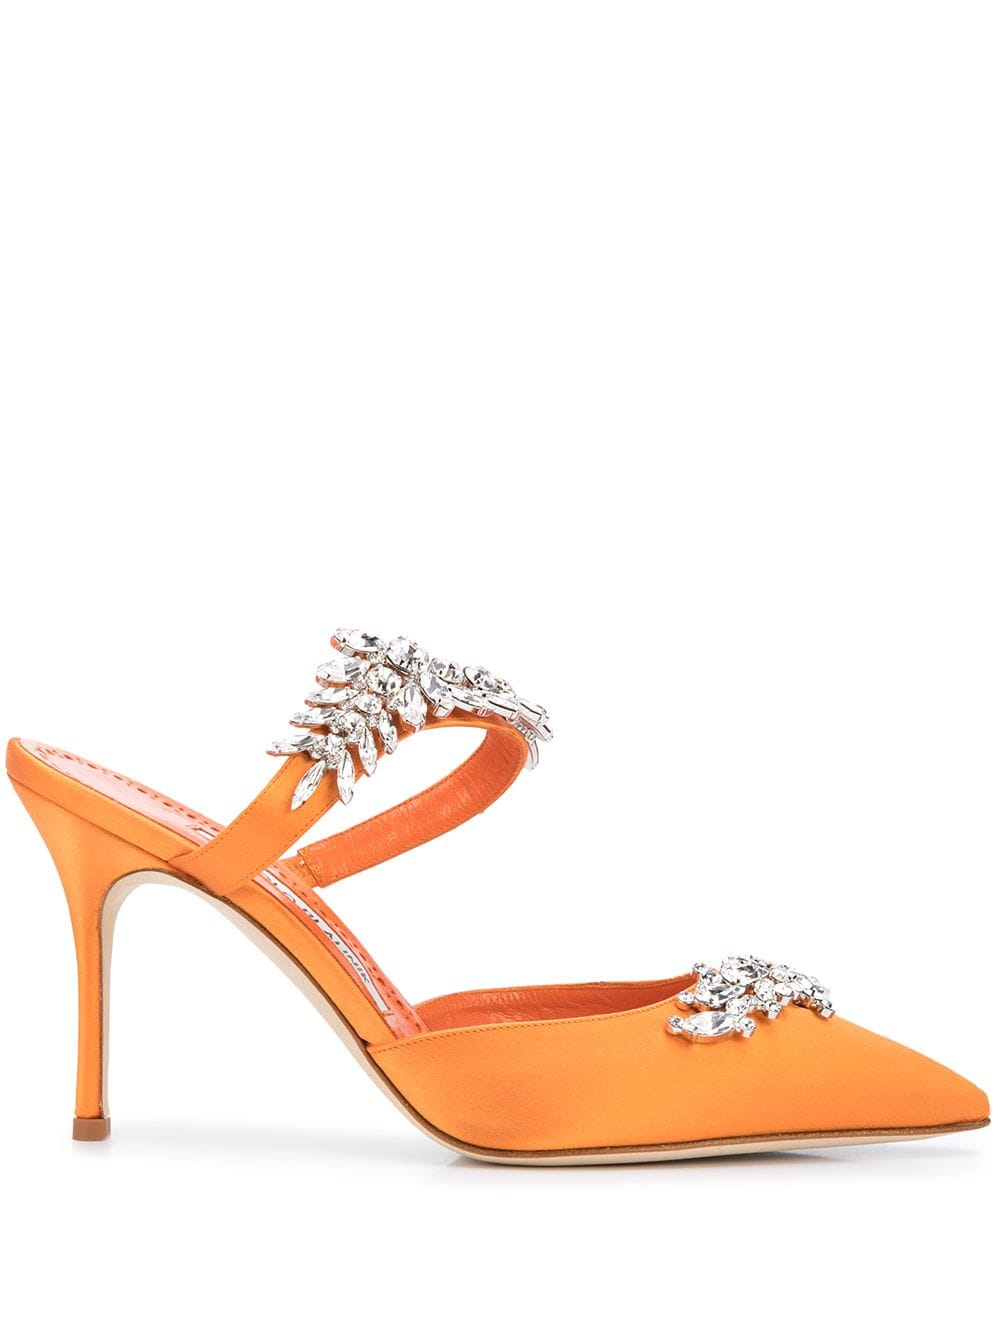 Lurum Pointed Crystal Embellished Mules